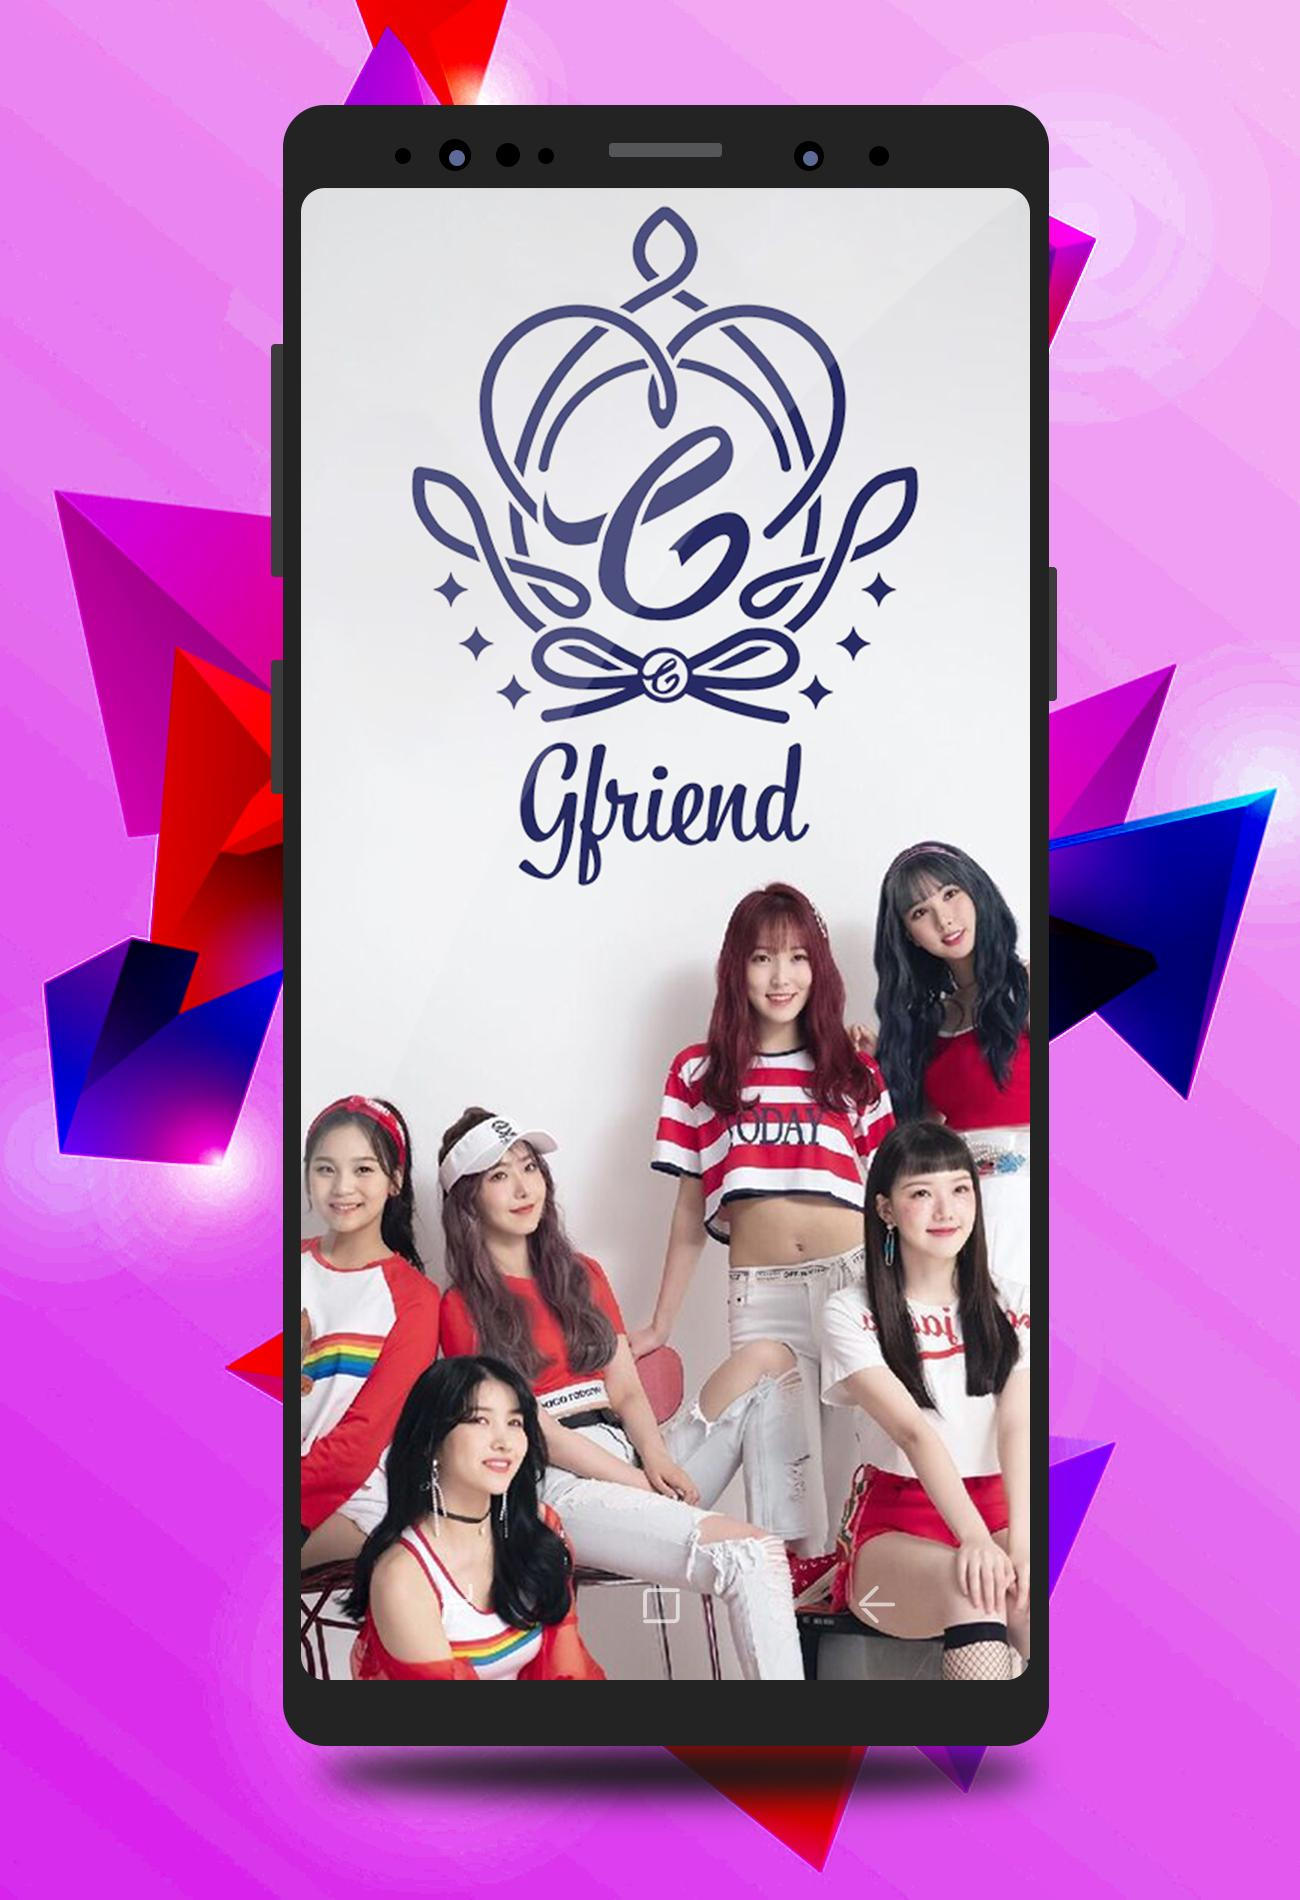 gfriend wallpaper kpop hd for android apk download gfriend wallpaper kpop hd for android